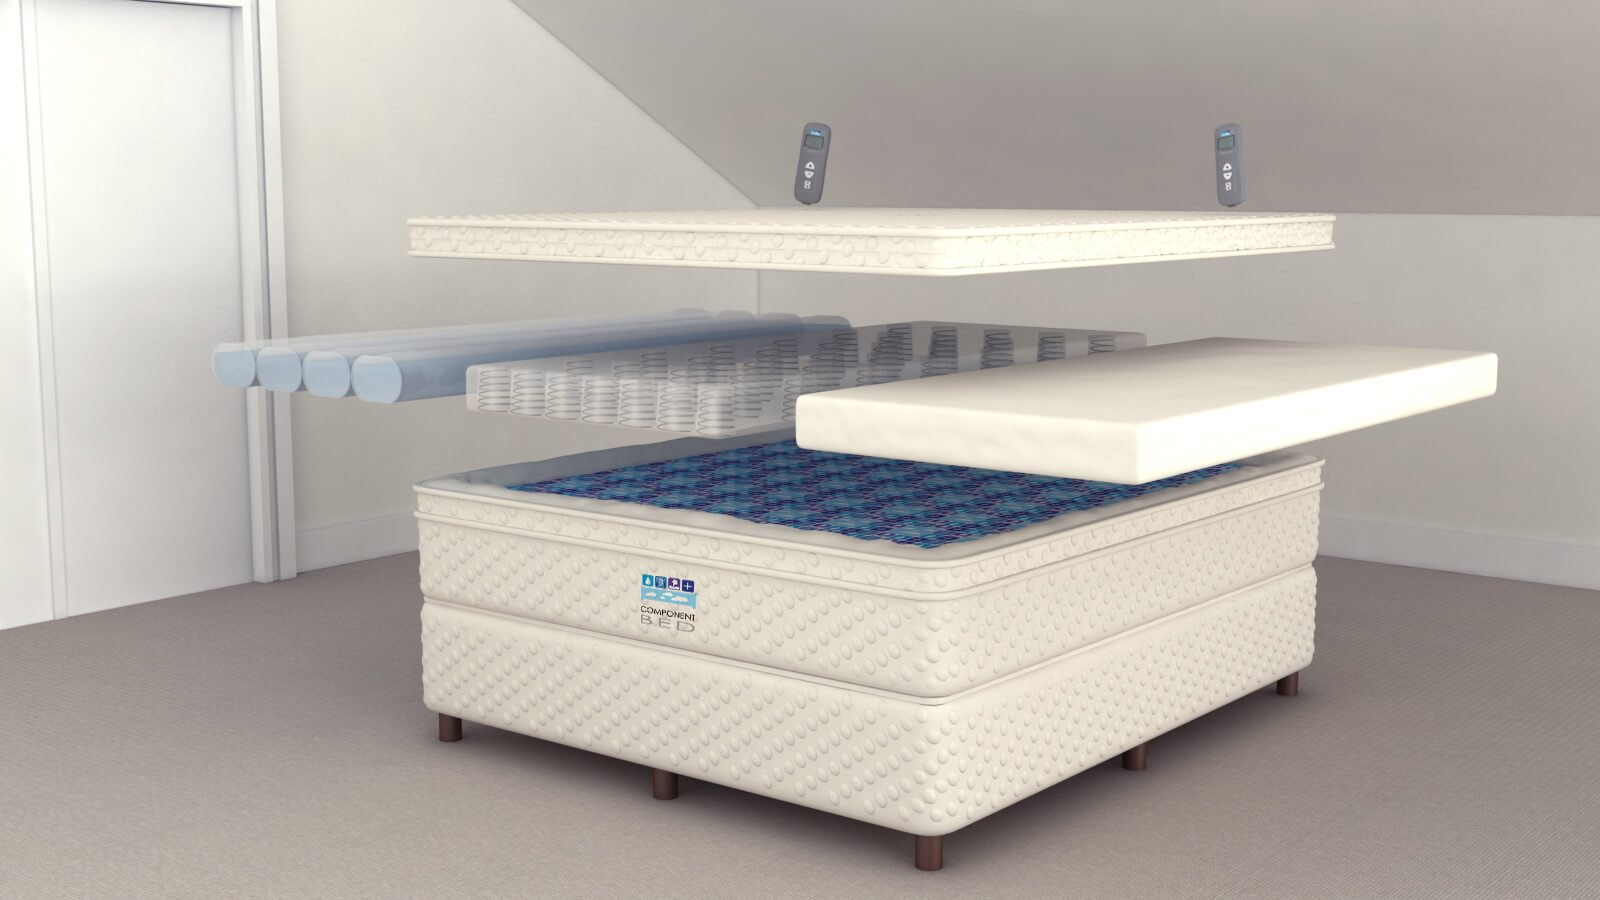 Cheap Twin Mattresses Englander Finale 10inch Innerspring Mattress Enjoy A Super Soft U0026